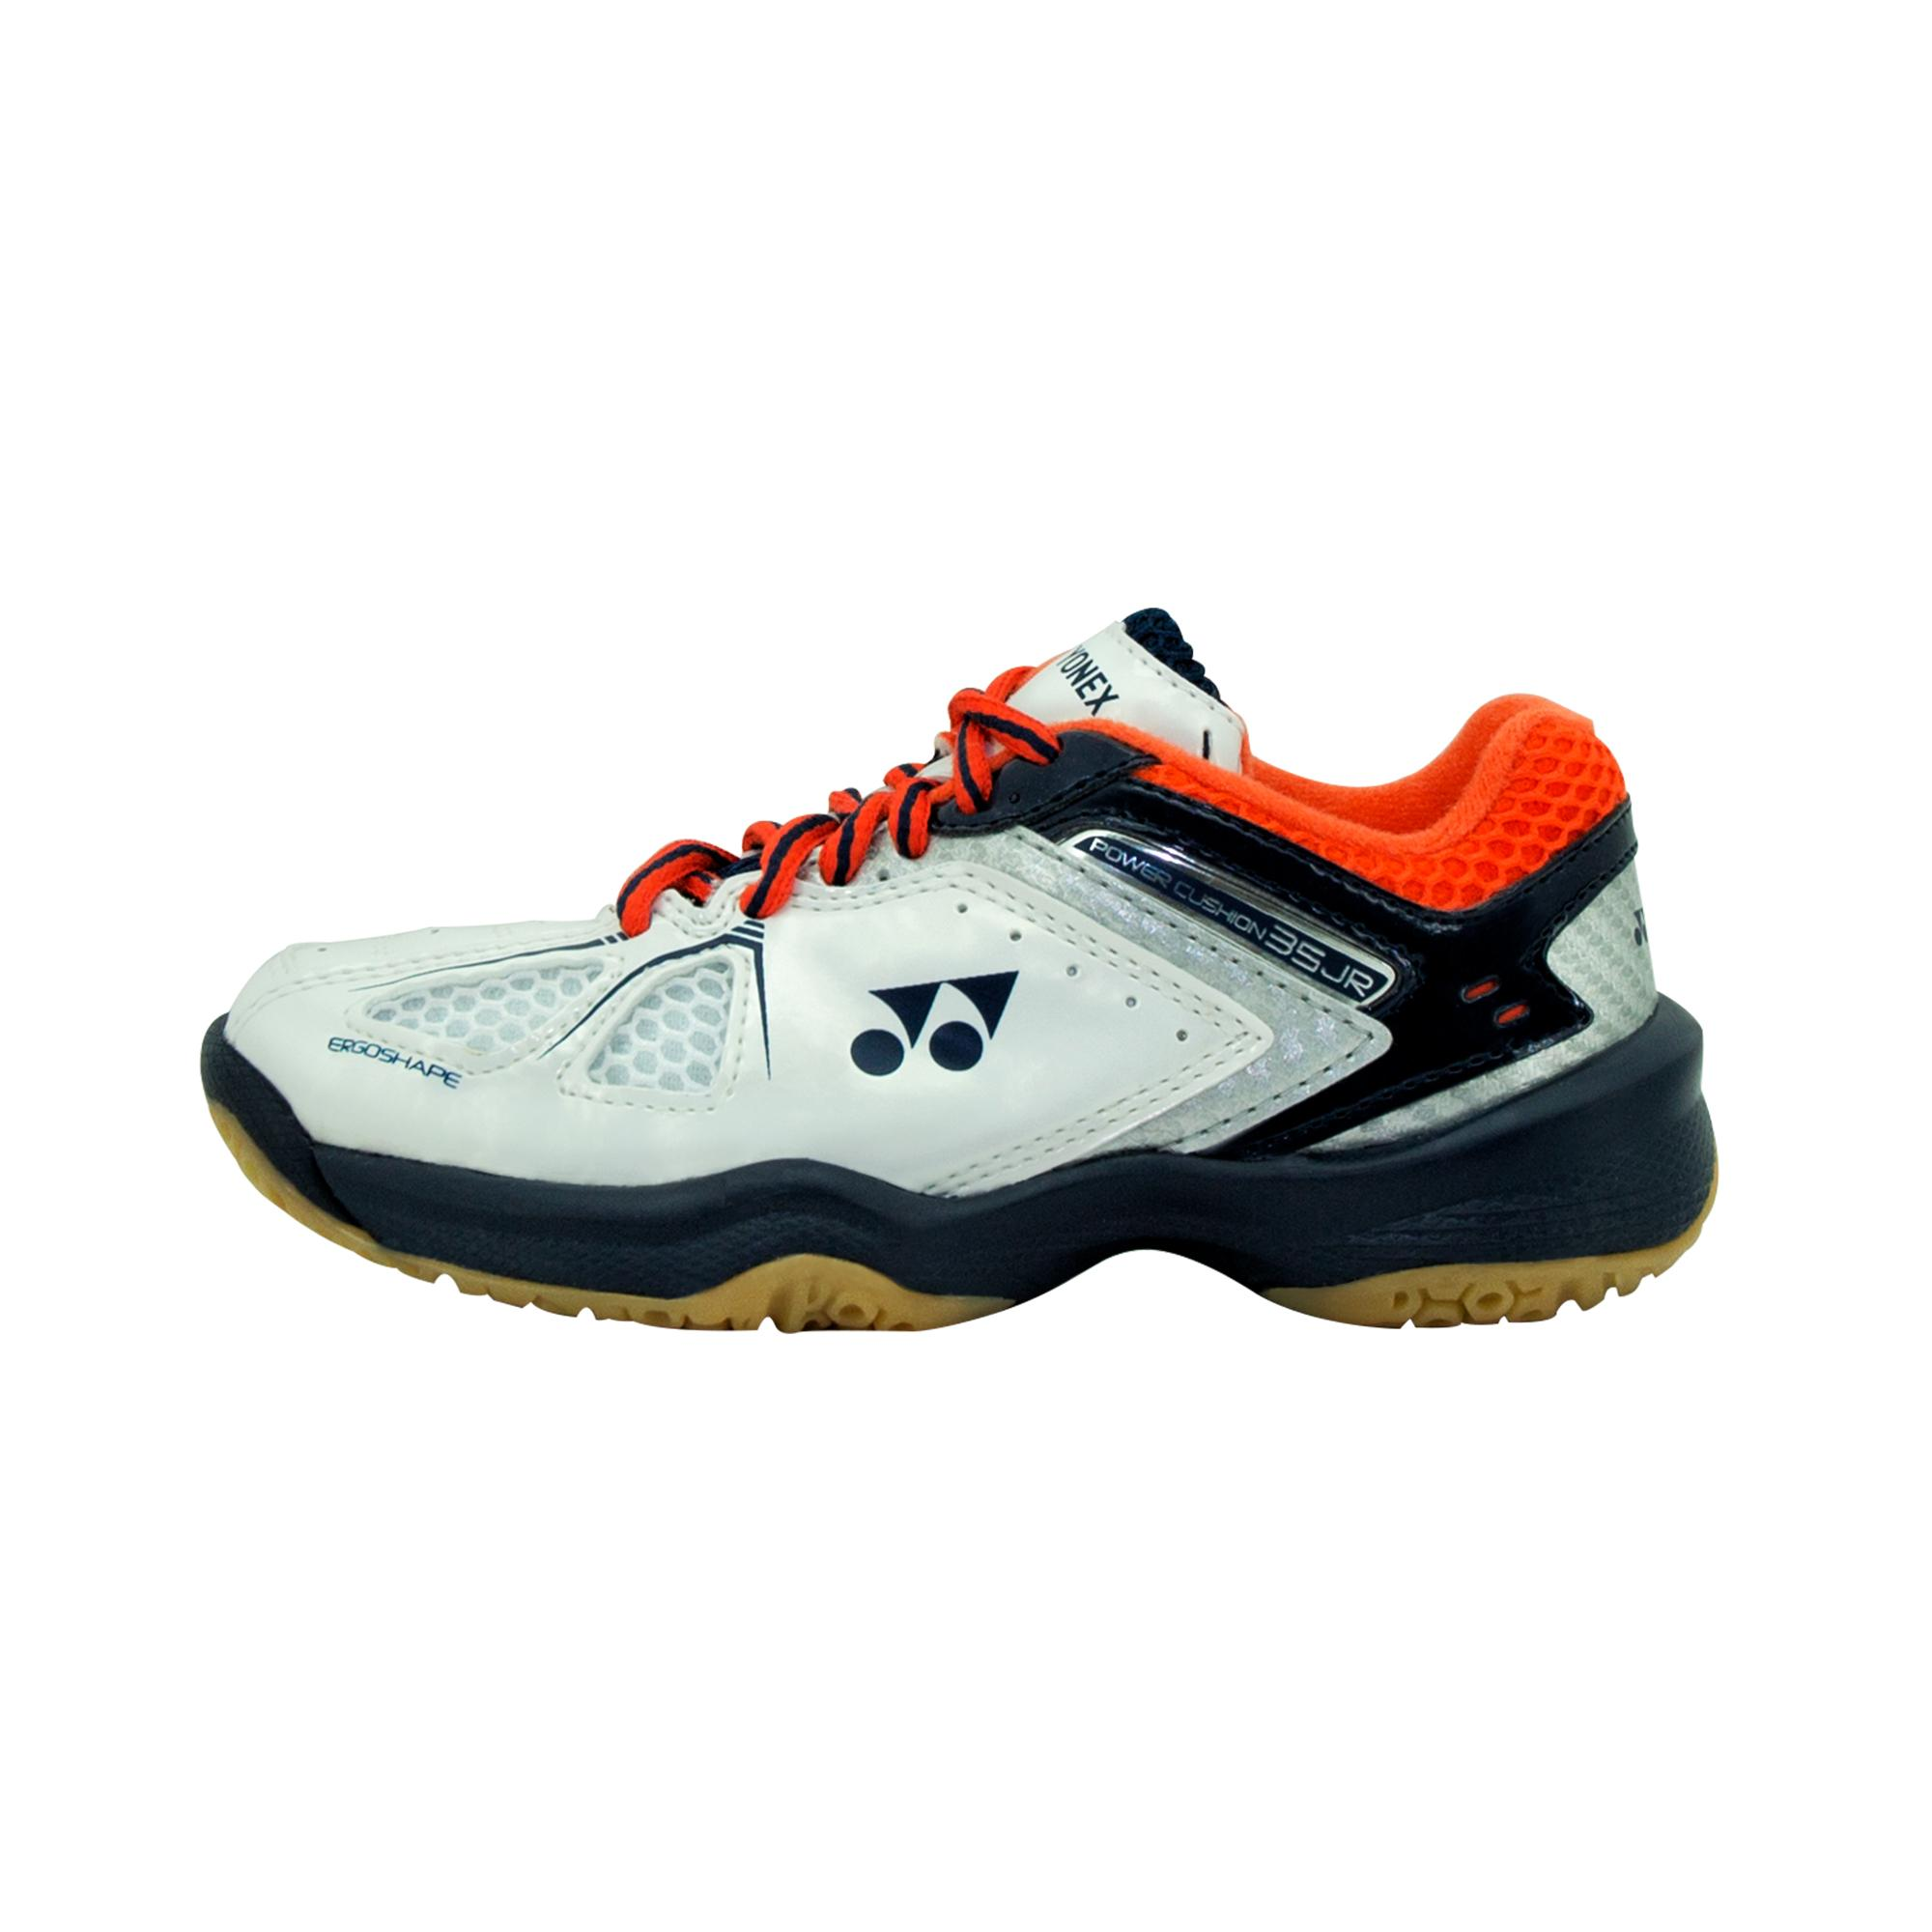 Yonex Power Cushion 35 Junior Sunriseclick Official Yonex Online Shop